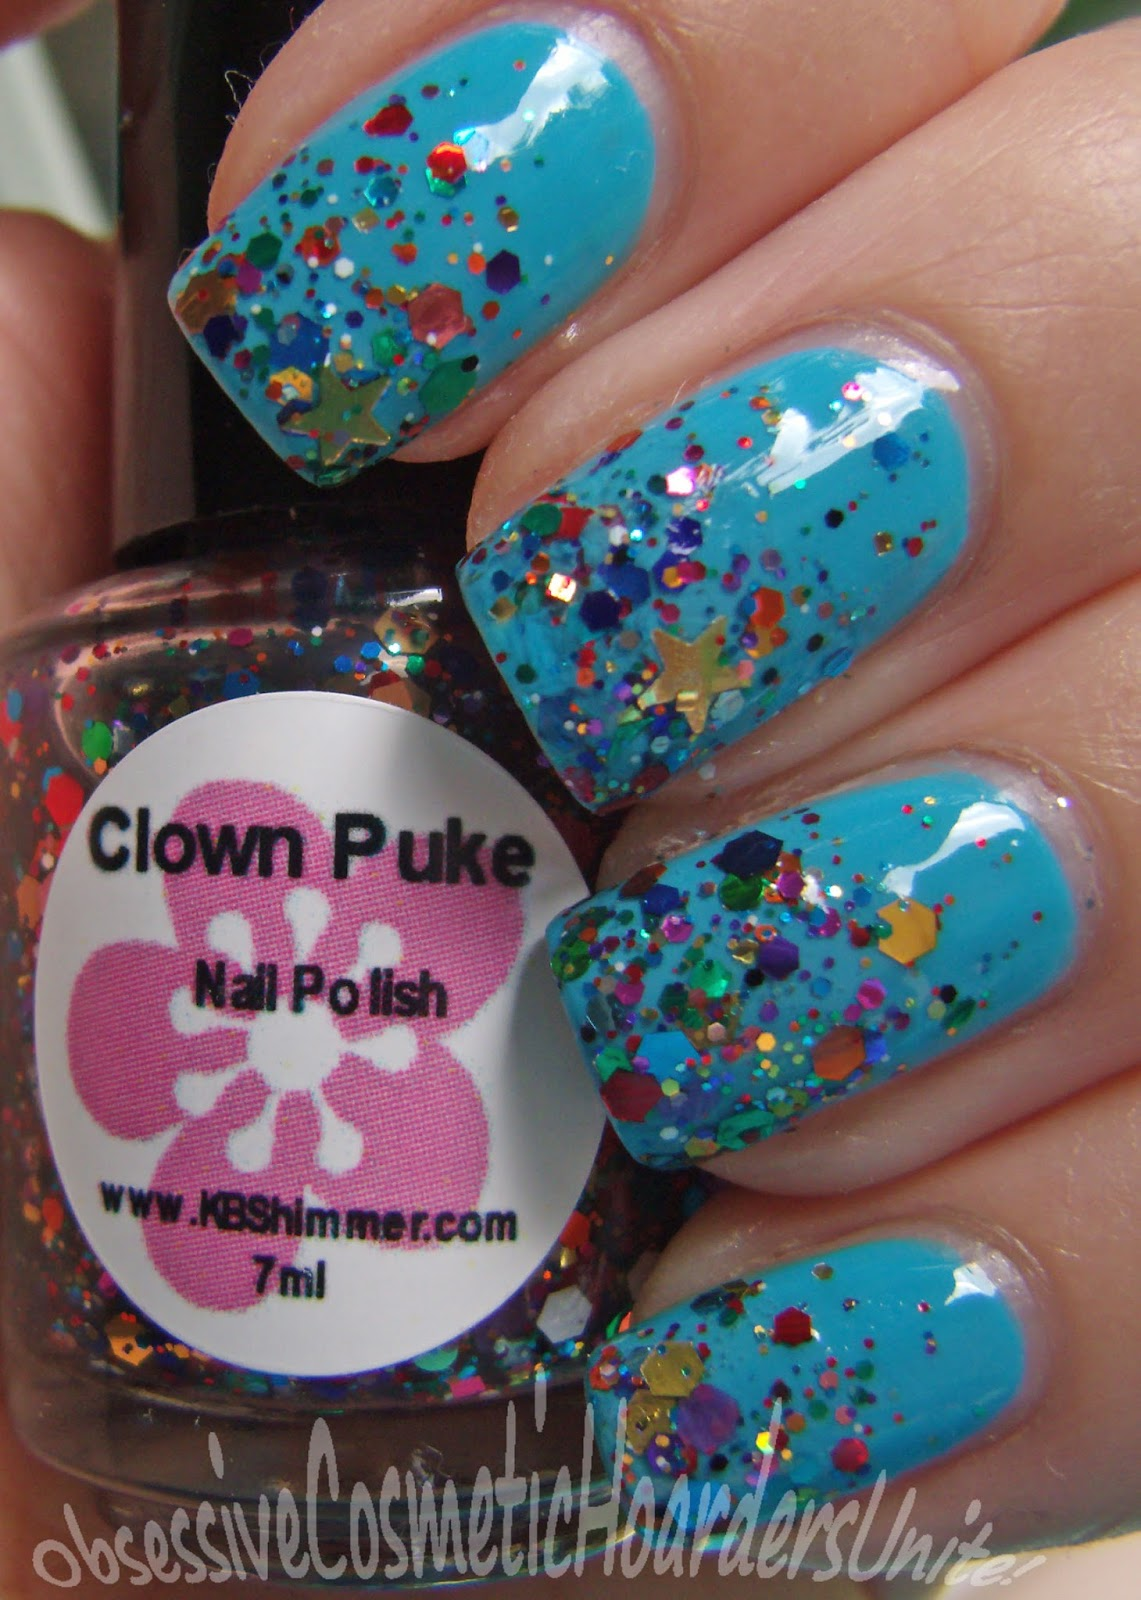 Obsessive Cosmetic Hoarders Unite Twinsie Tuesday Circus Featuring Kb Shimmer Clown Puke